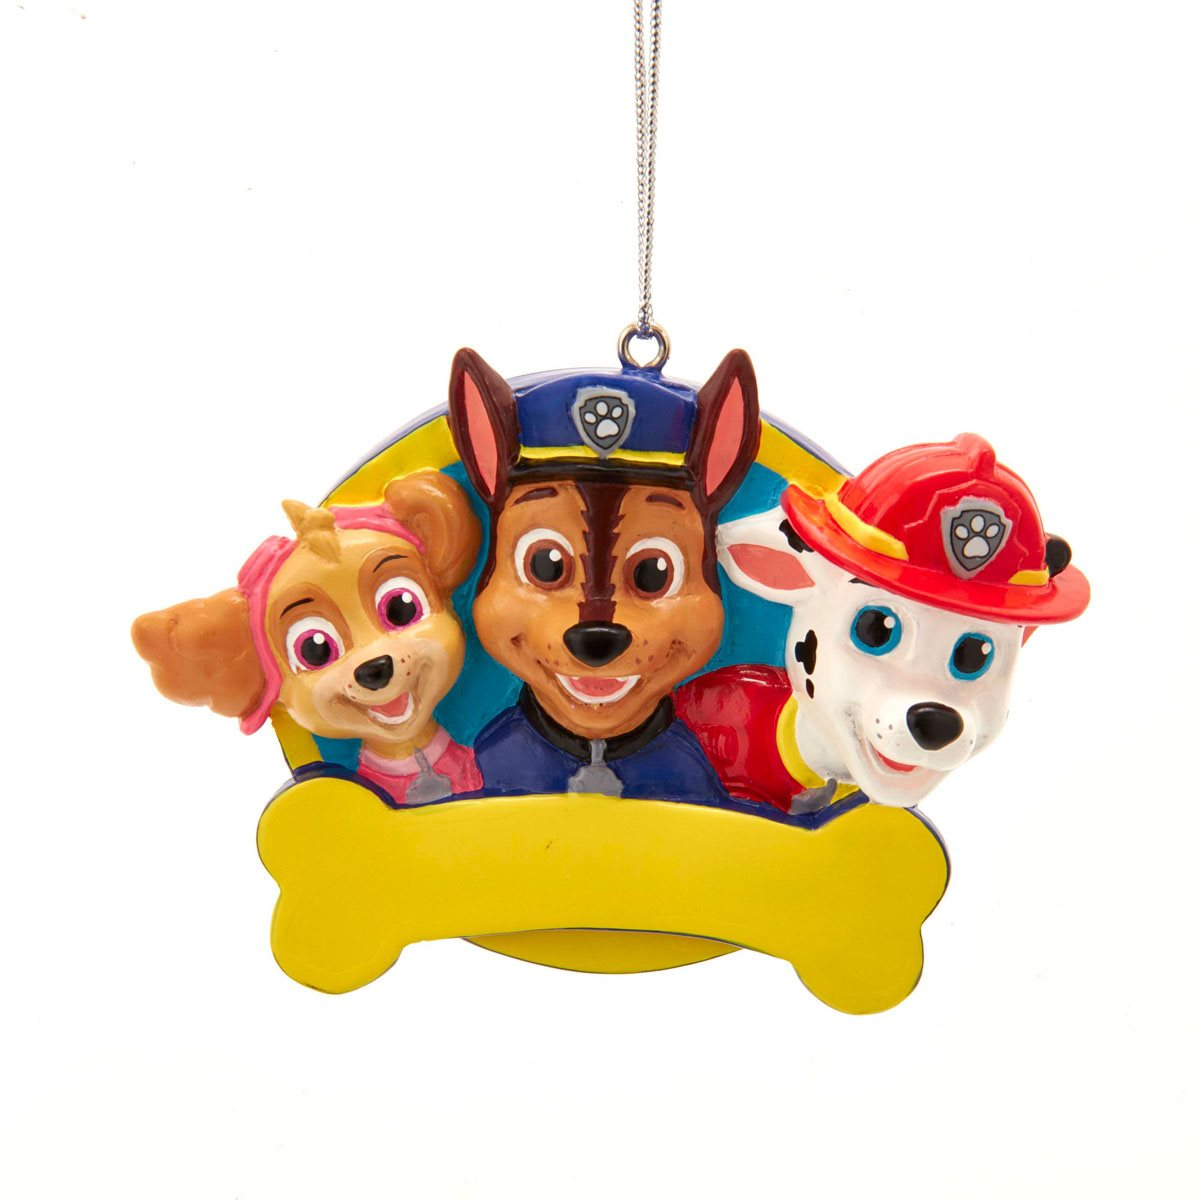 Paw Patrol Christmas Ormament Dated 2020 PAW Patrol Personalization 3 1/4 Inch Ornament